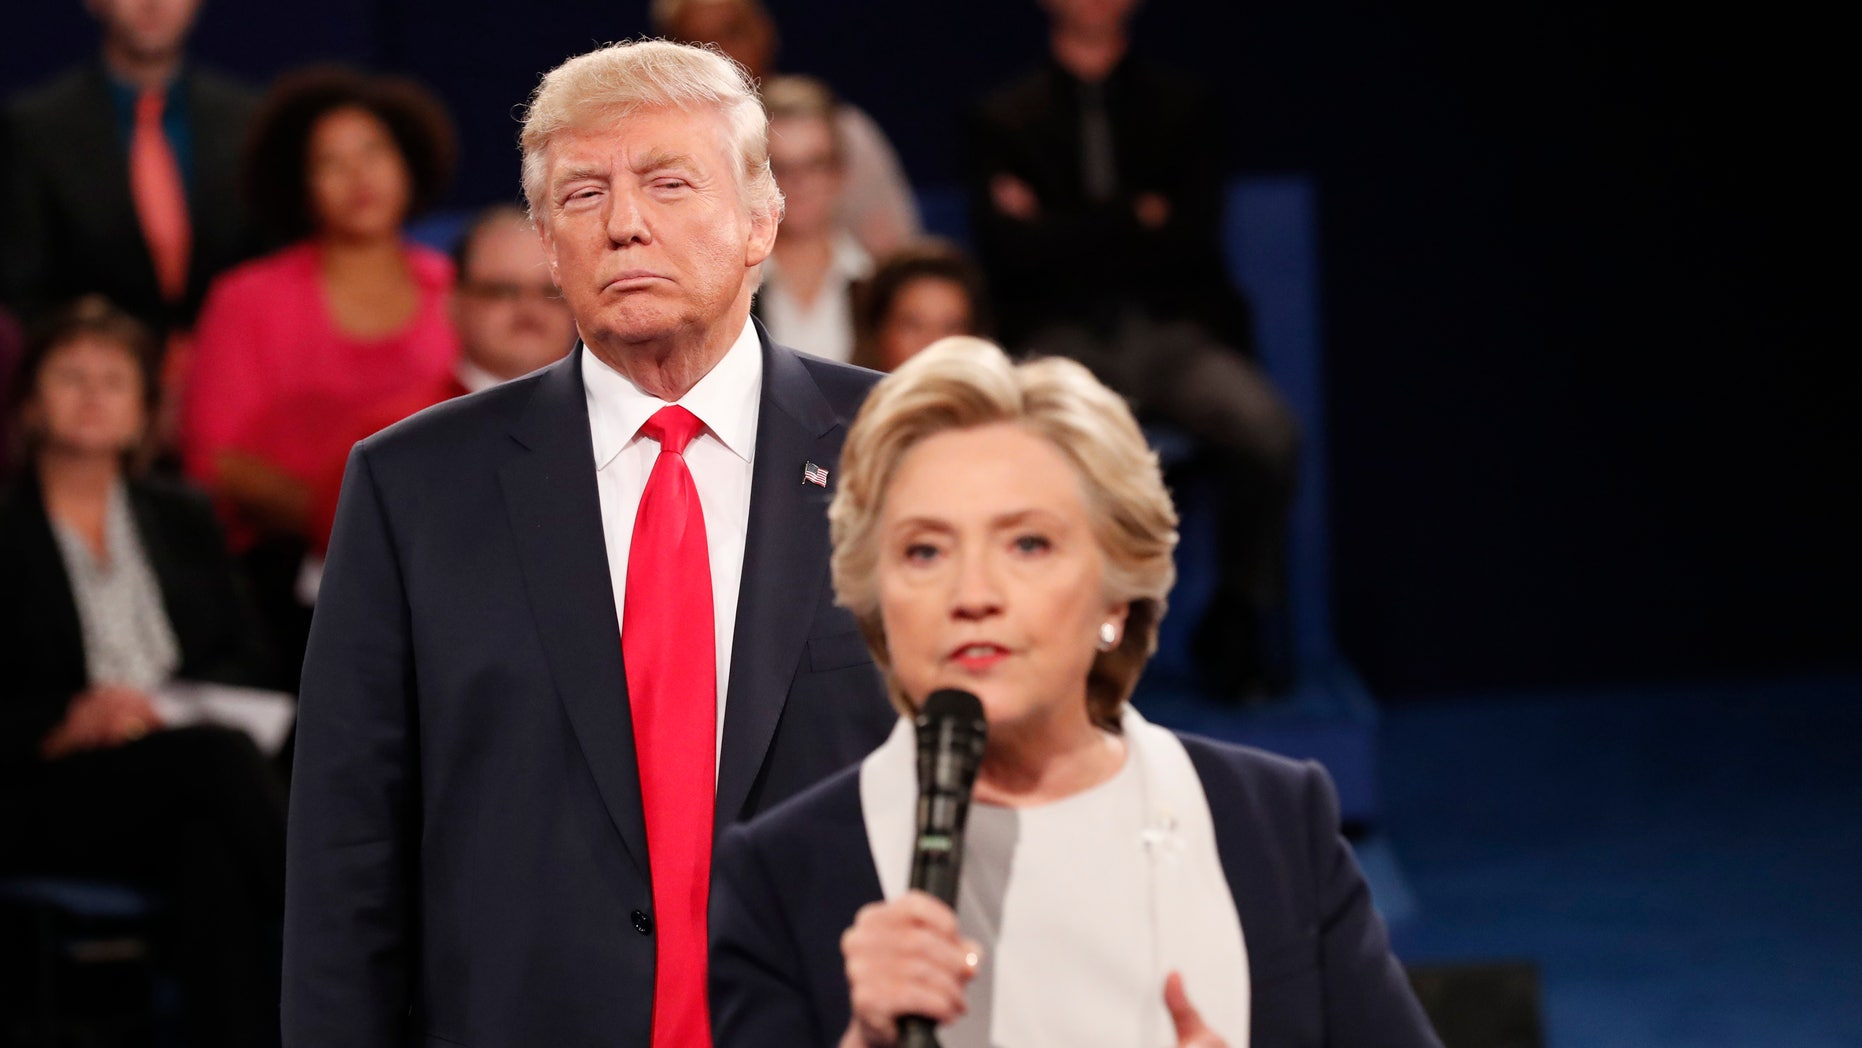 Republican U.S. presidential nominee Donald Trump listens as Democratic nominee Hillary Clinton answers a question from the audience during their presidential town hall debate at Washington University in St. Louis, Missouri, U.S., October 9, 2016. REUTERS/Rick Wilking - RTSRIR9